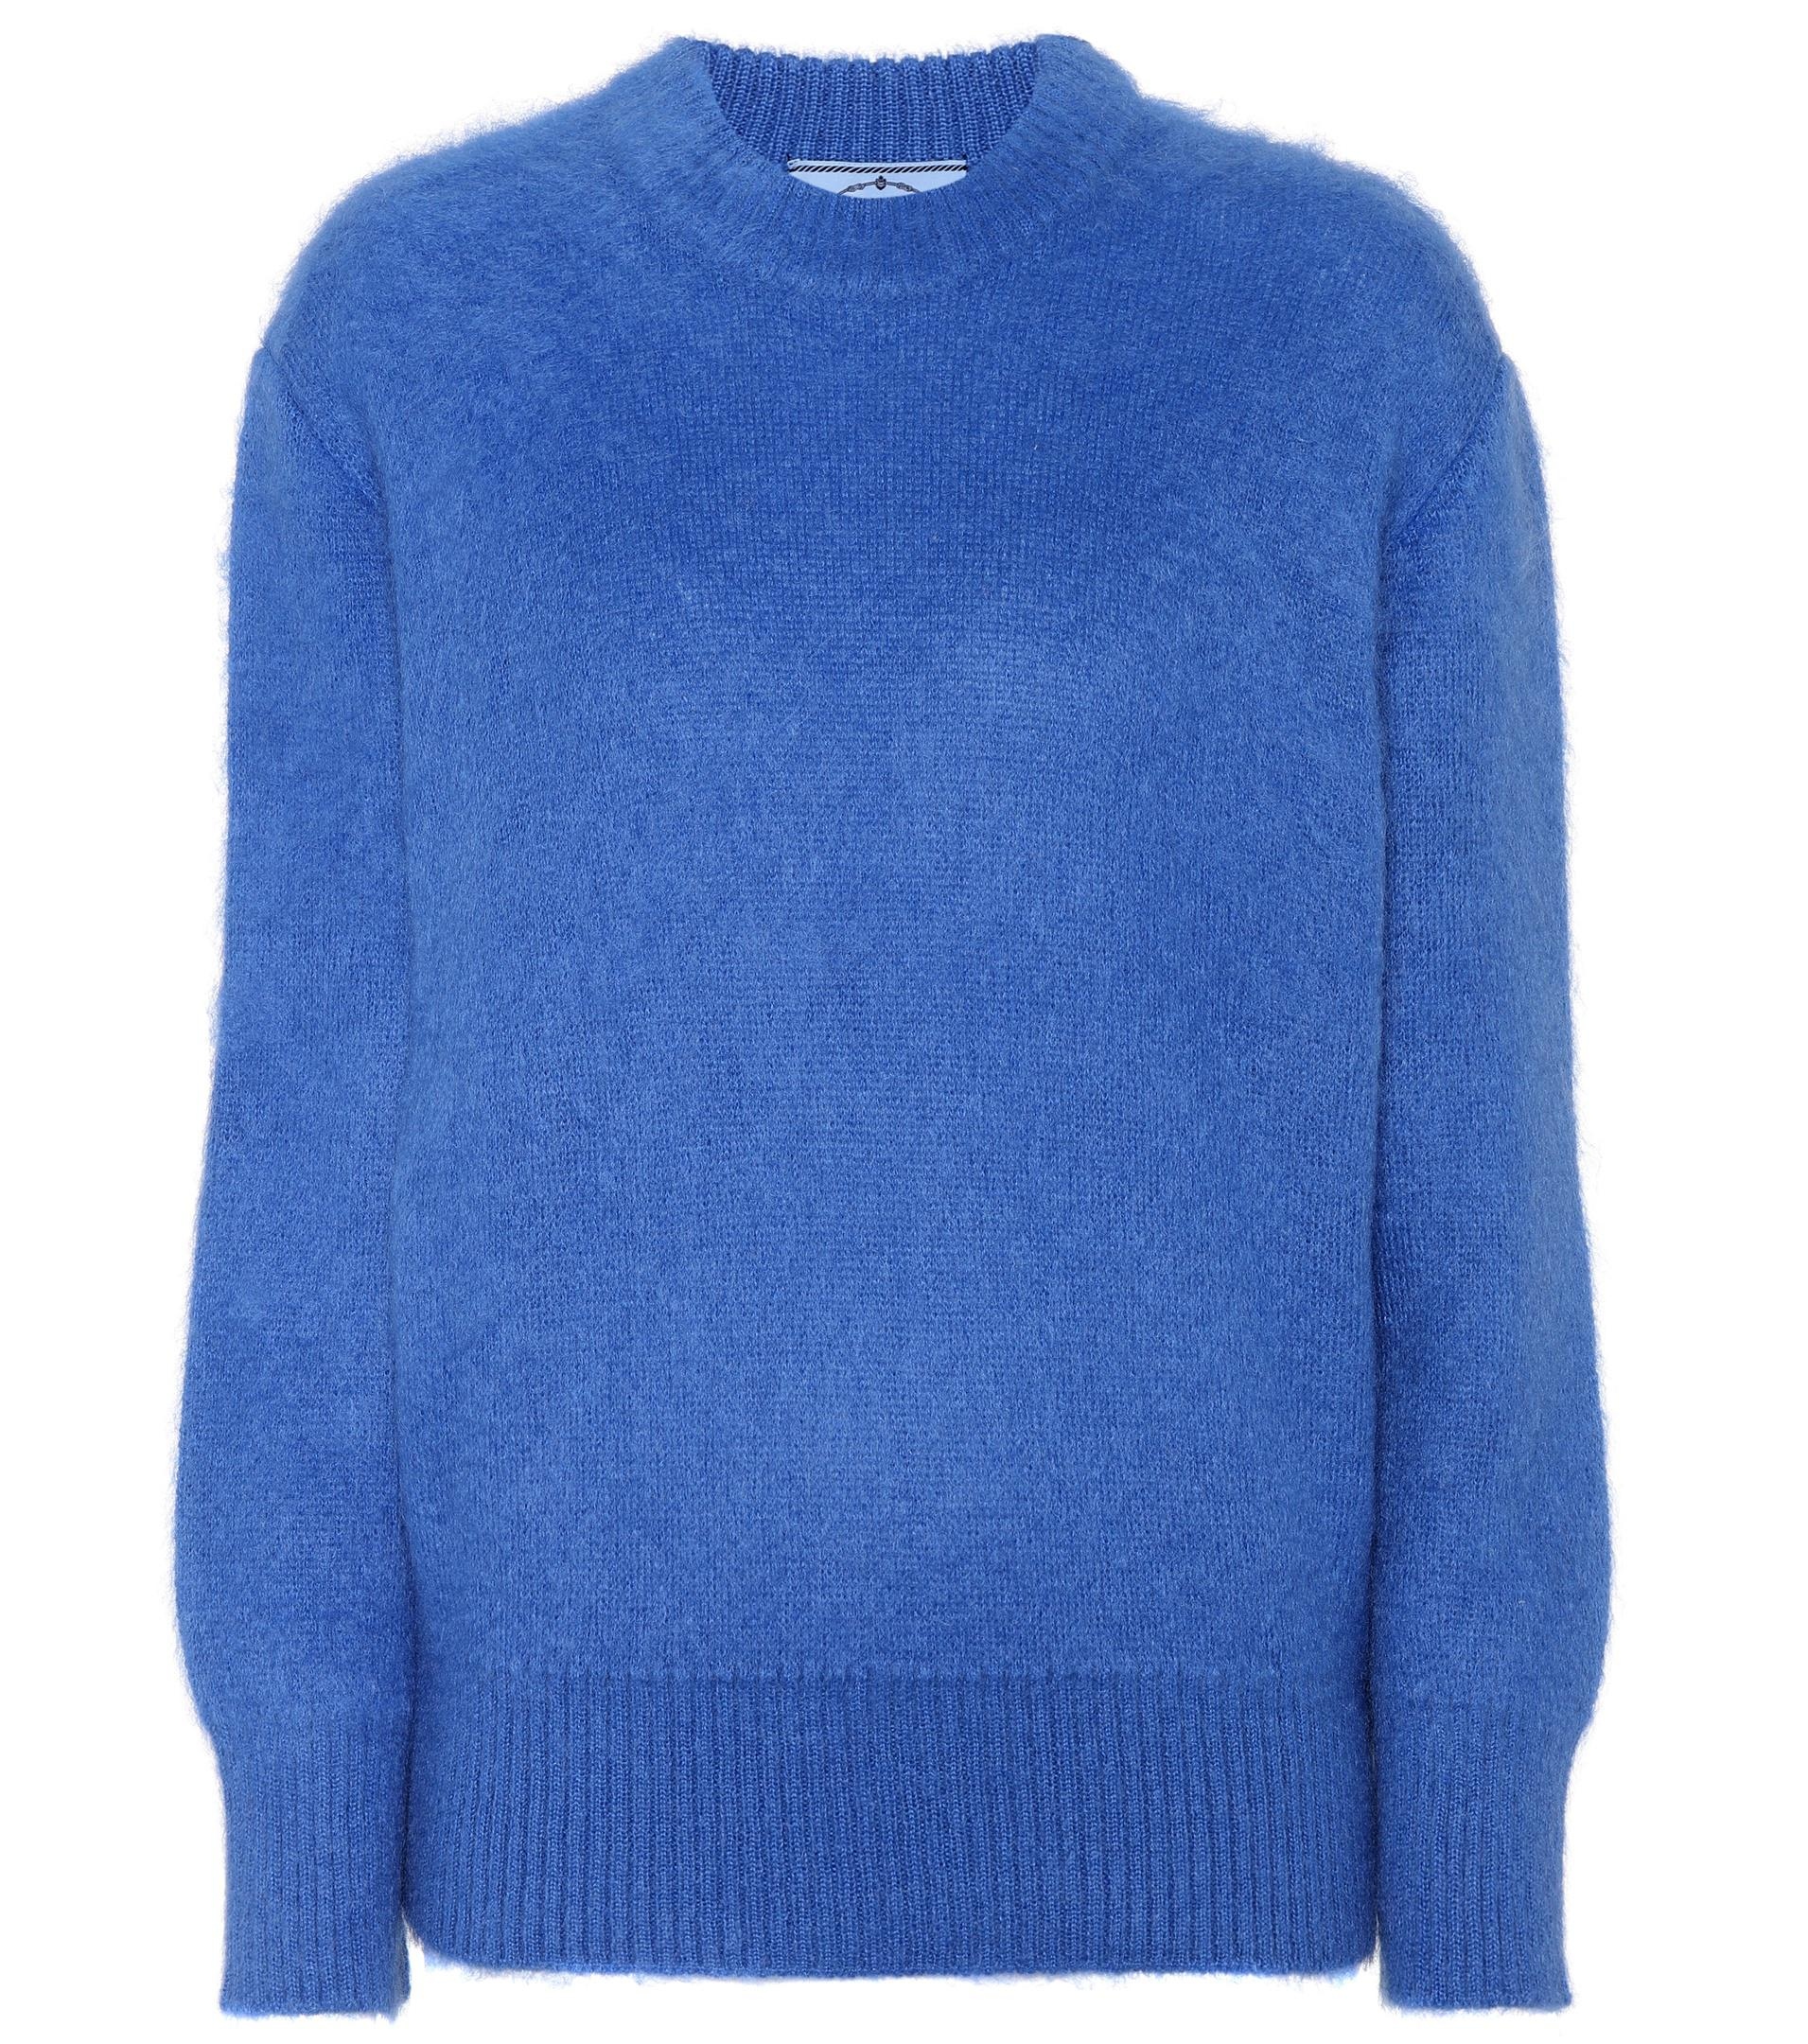 Womens Mohair-Blend Cardigan Prada Clearance Get To Buy Factory Outlet Cheap Online Cheap Sale Looking For Pictures For Sale Low Shipping Online 8xrMXd